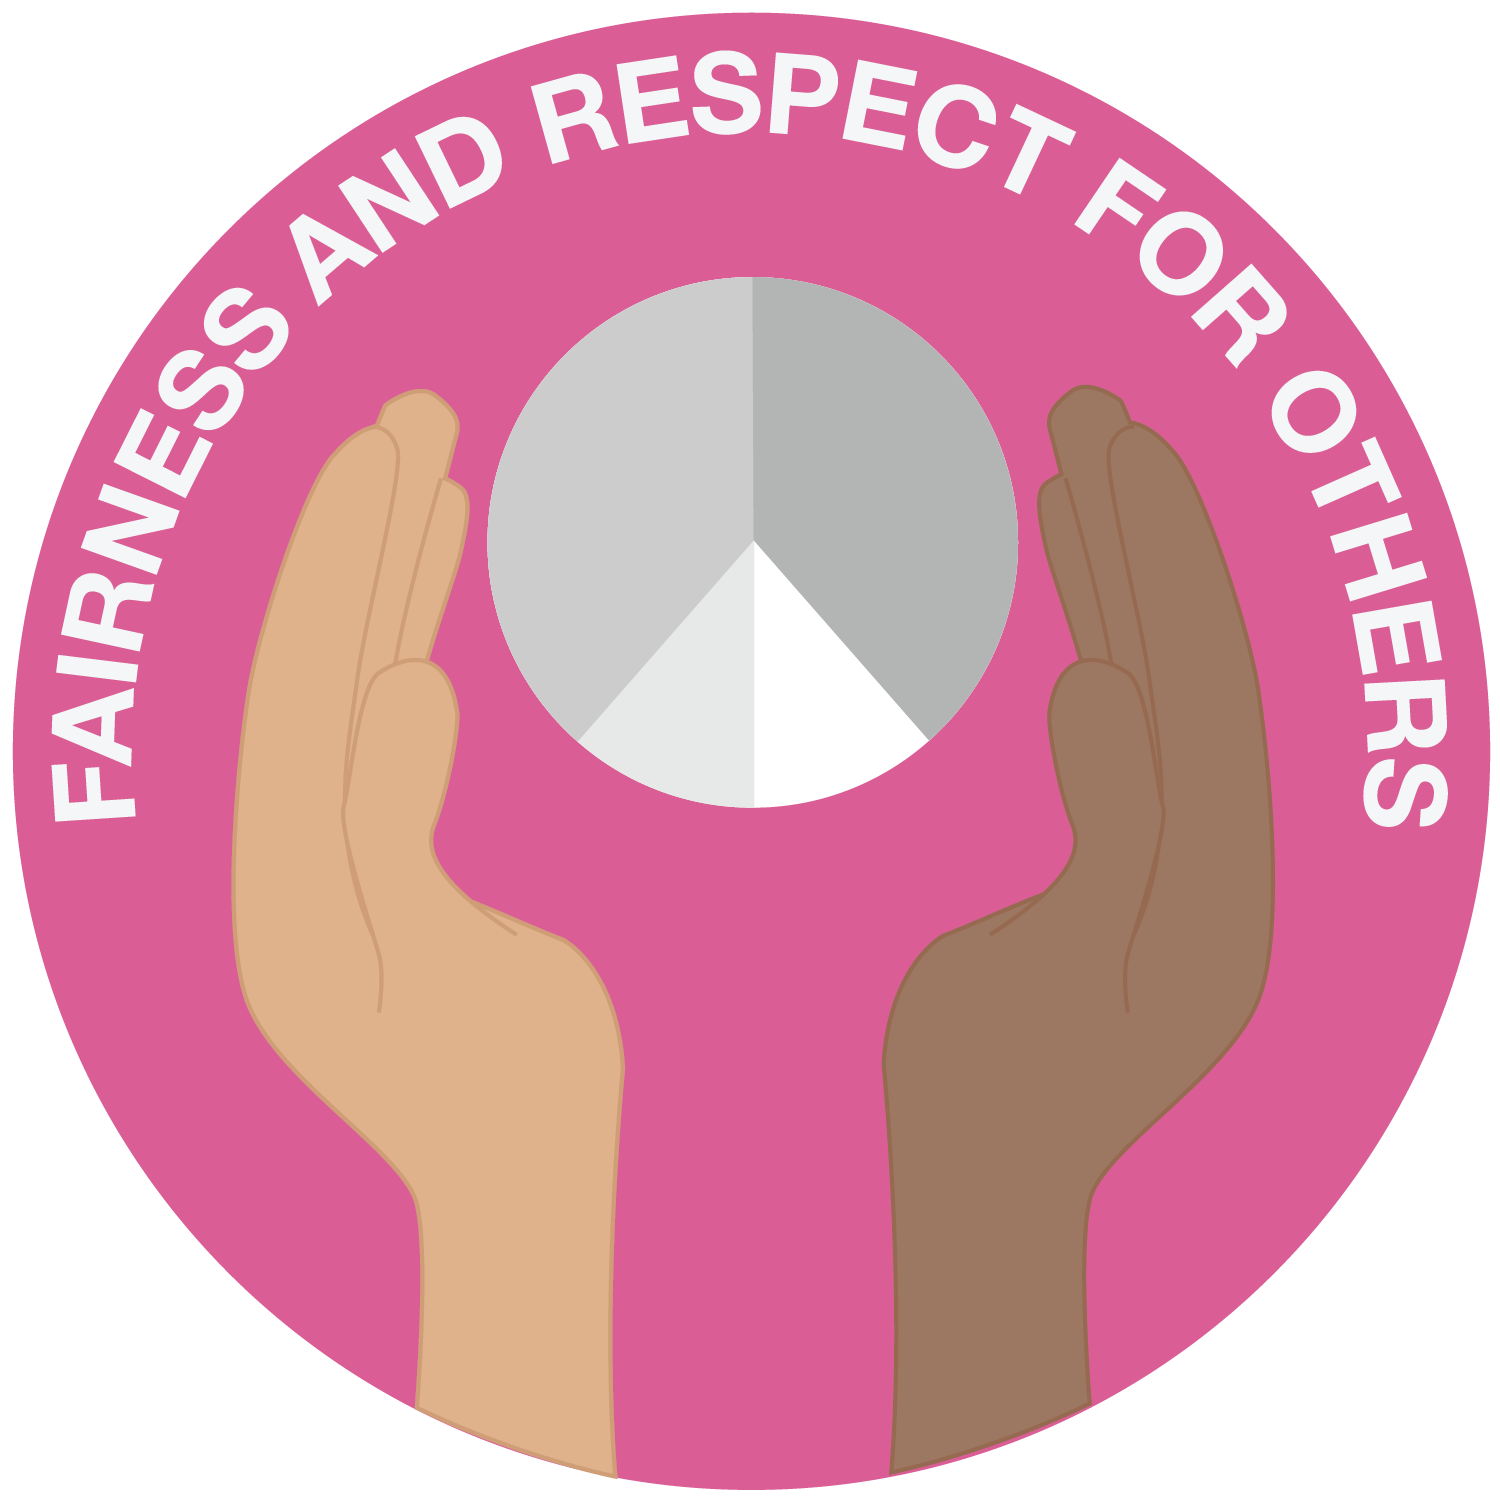 Fairness__Respect_For_Others.png